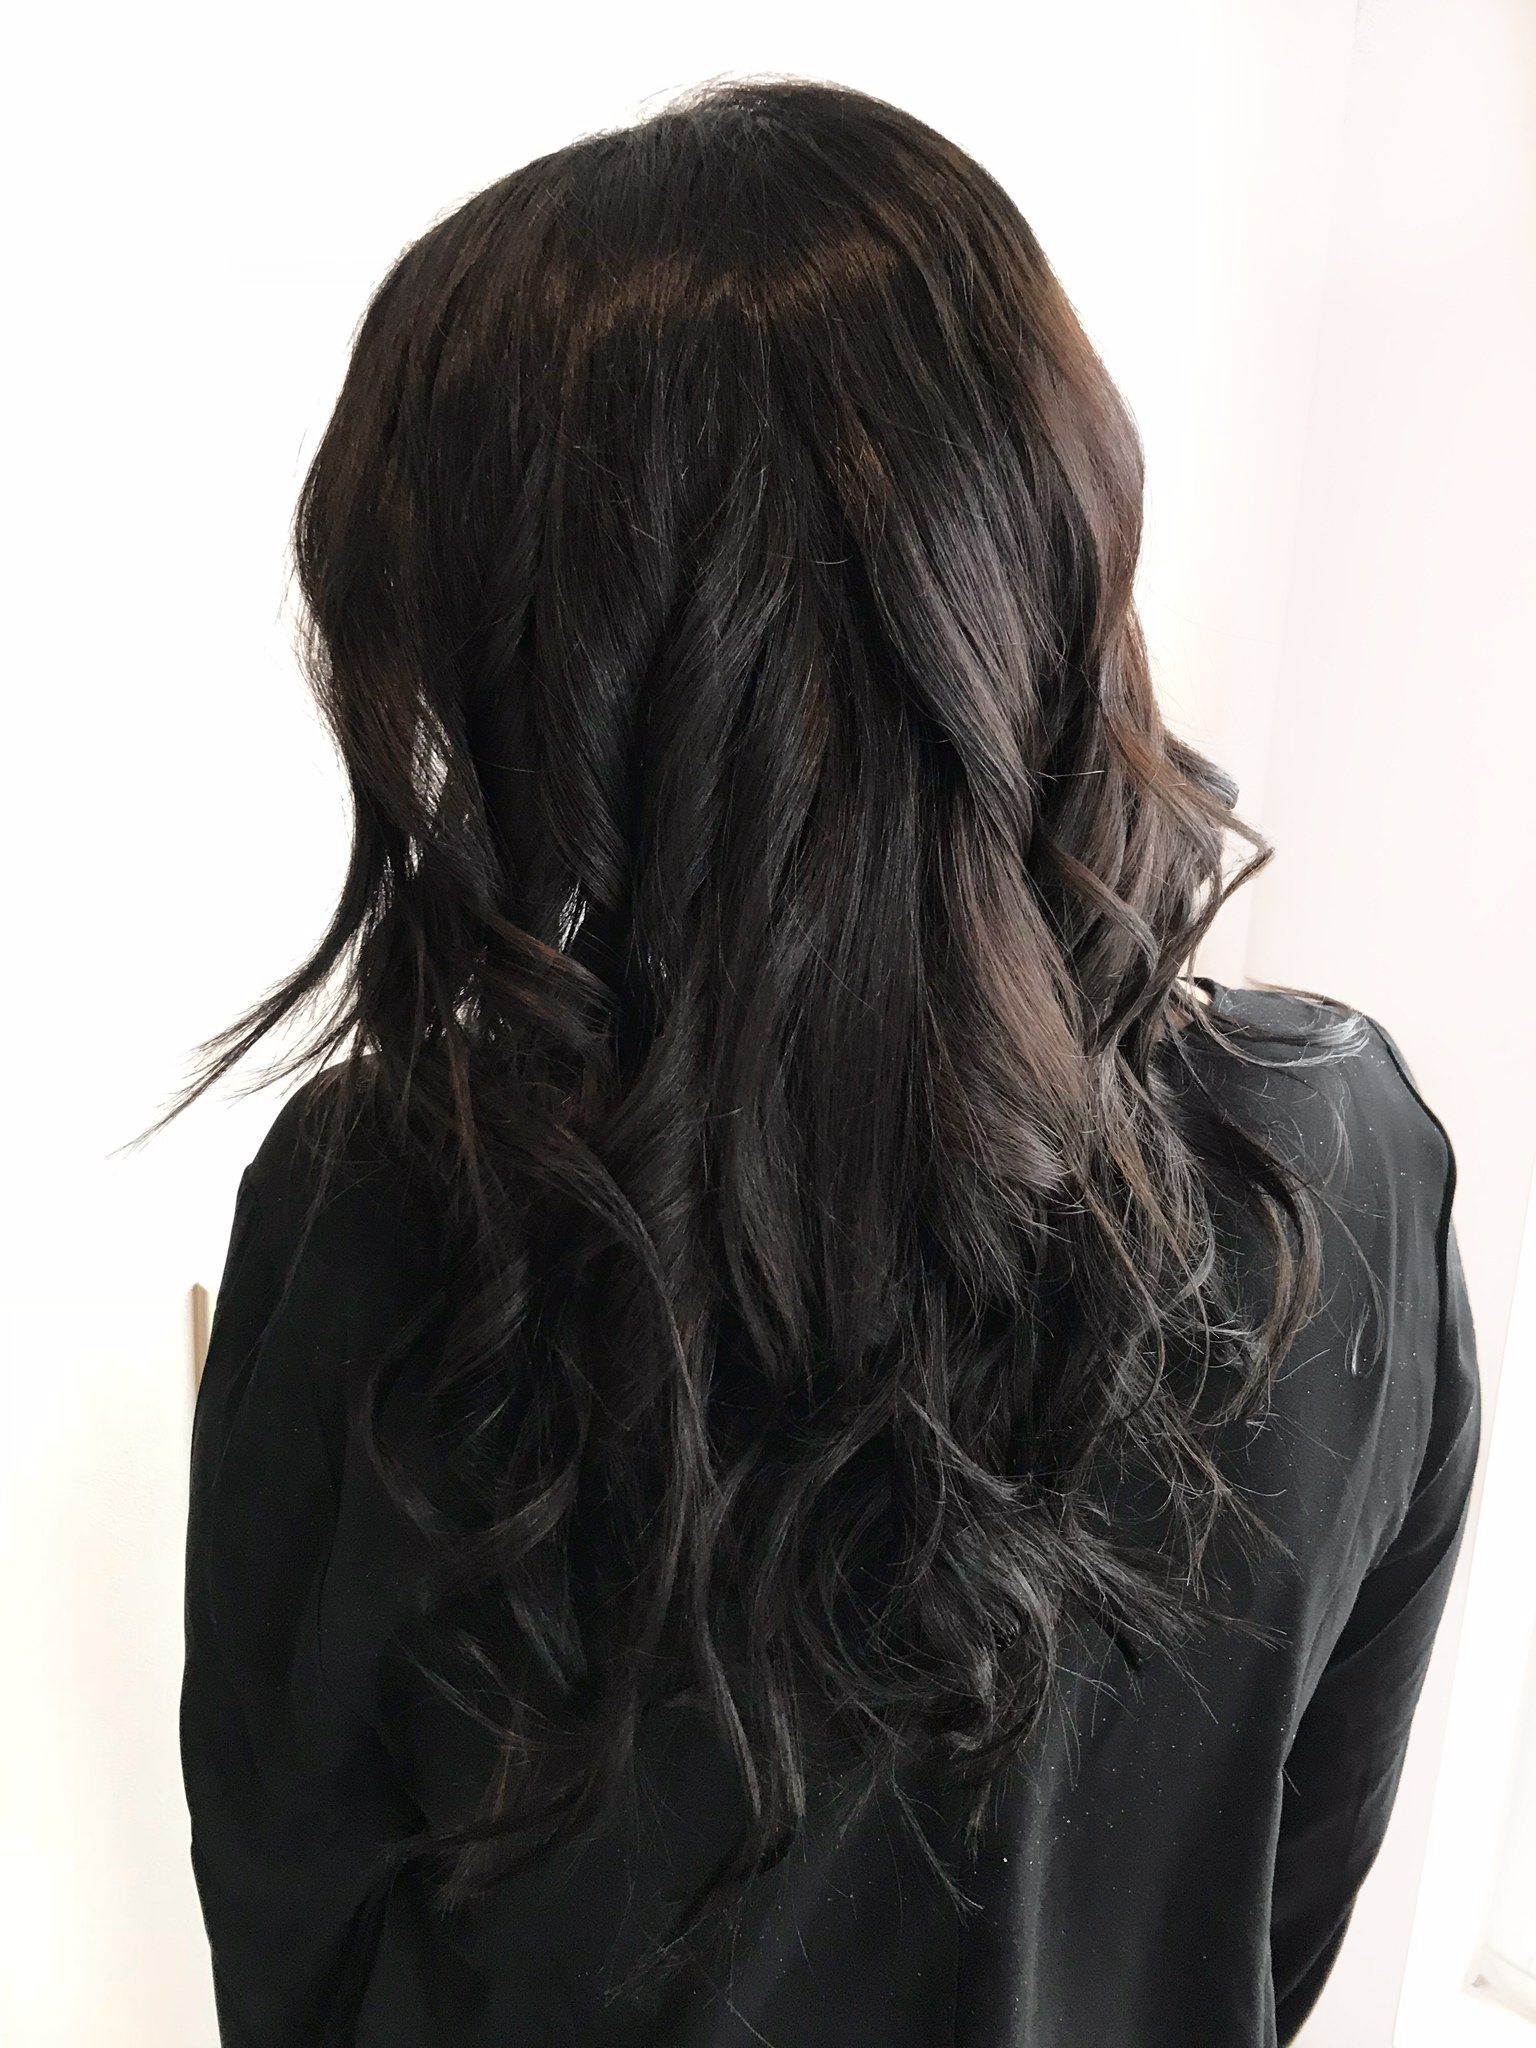 Hair By Karli We Service The Following Areas Pittsburgh Wexford